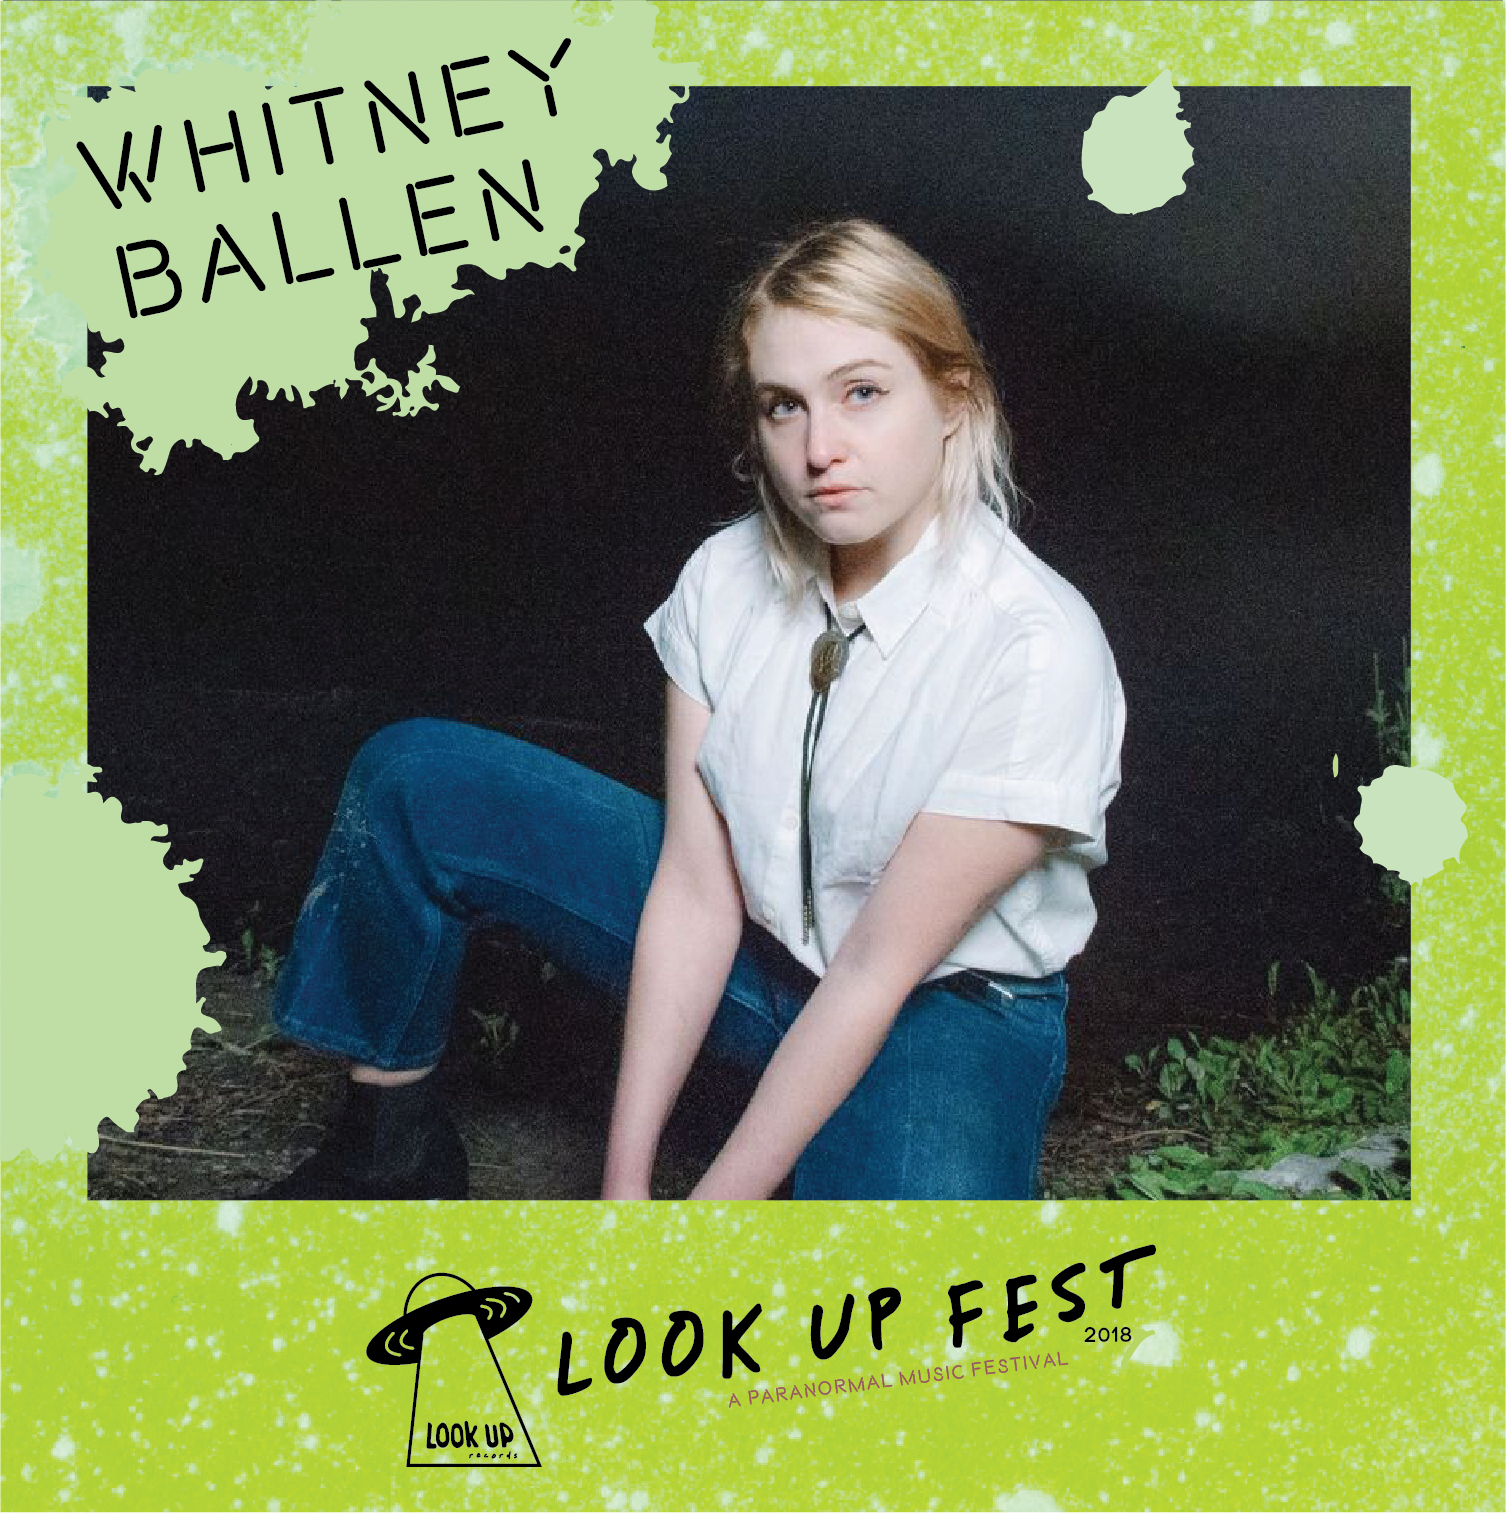 Whitney Ballen - Catch Whitney Ballen and her band playing at Look Up Fest 2018!